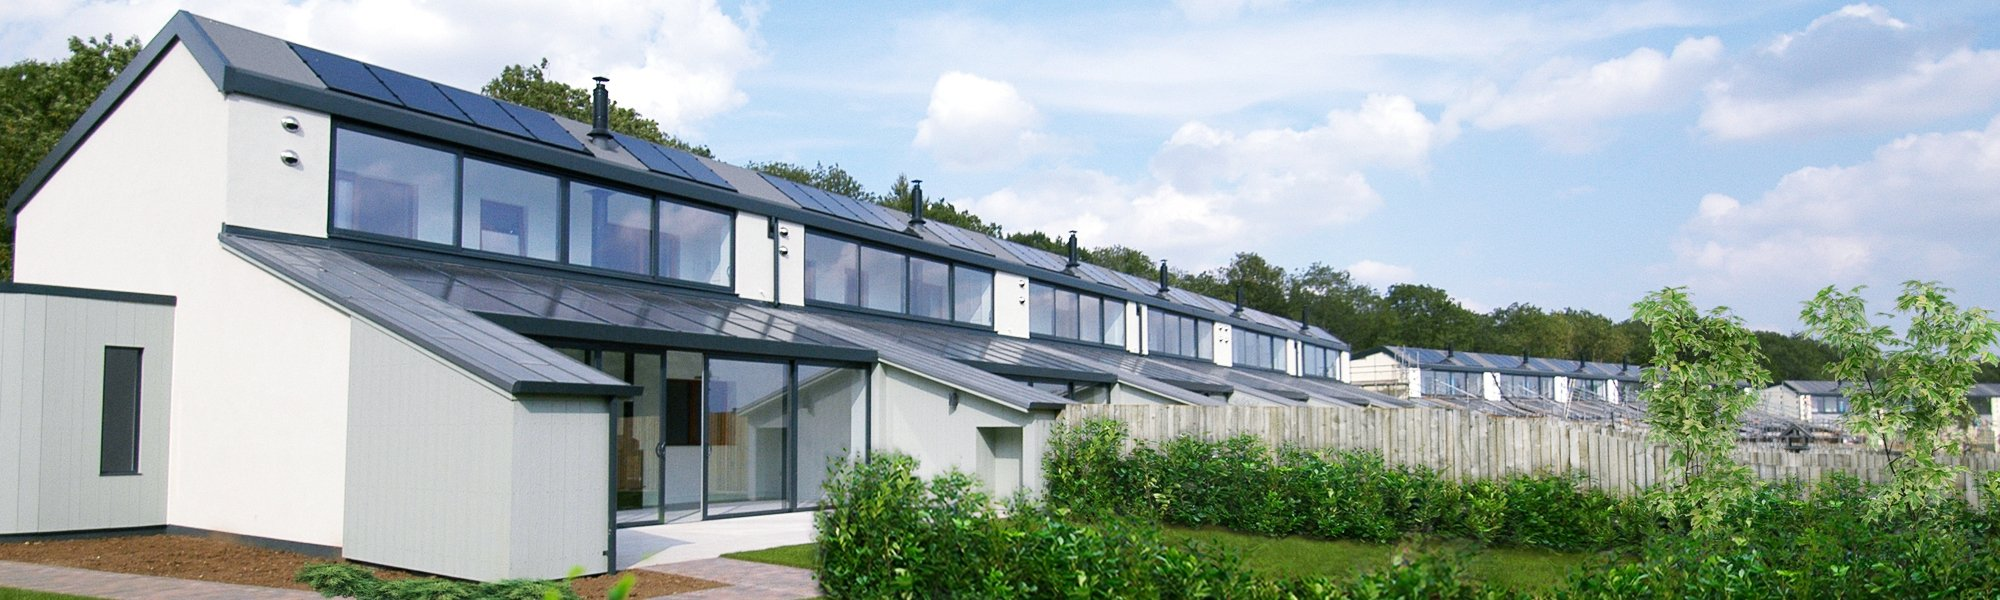 Eco Homes Sunflex SVG Composite Windows Park Farm Design